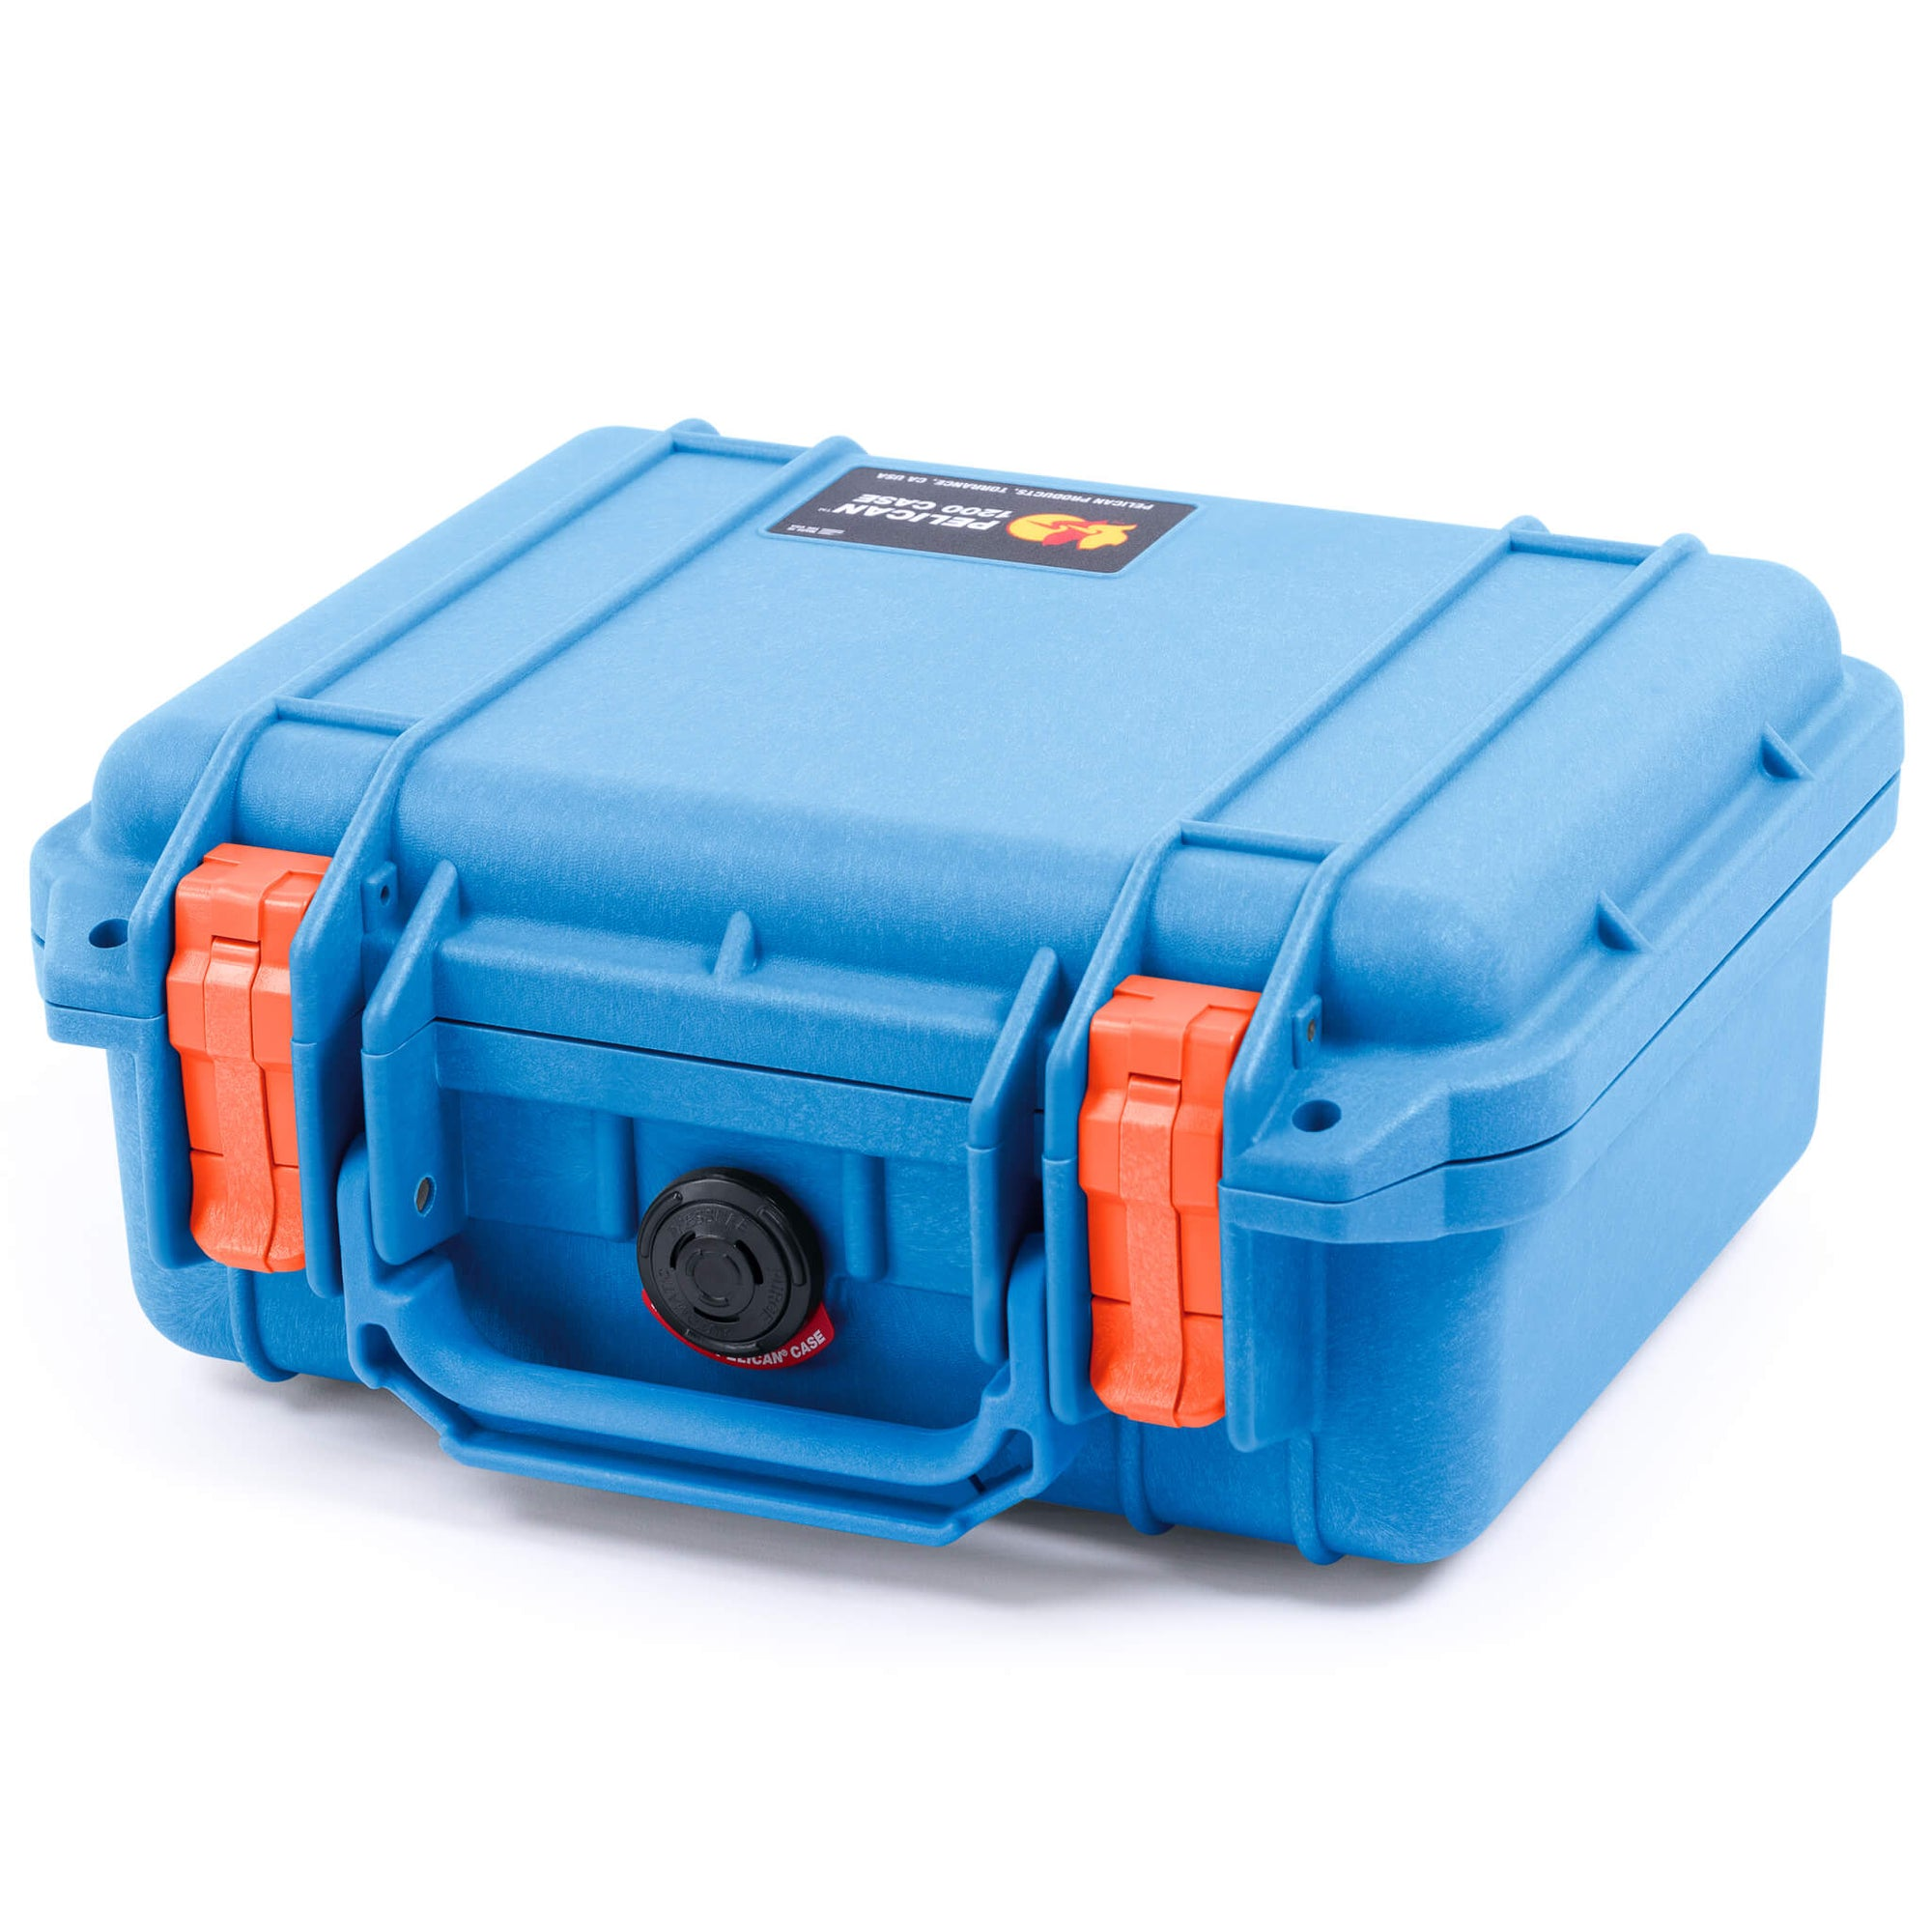 Pelican 1200 Case, Blue with Orange Handle & Latches - Pelican Color Case